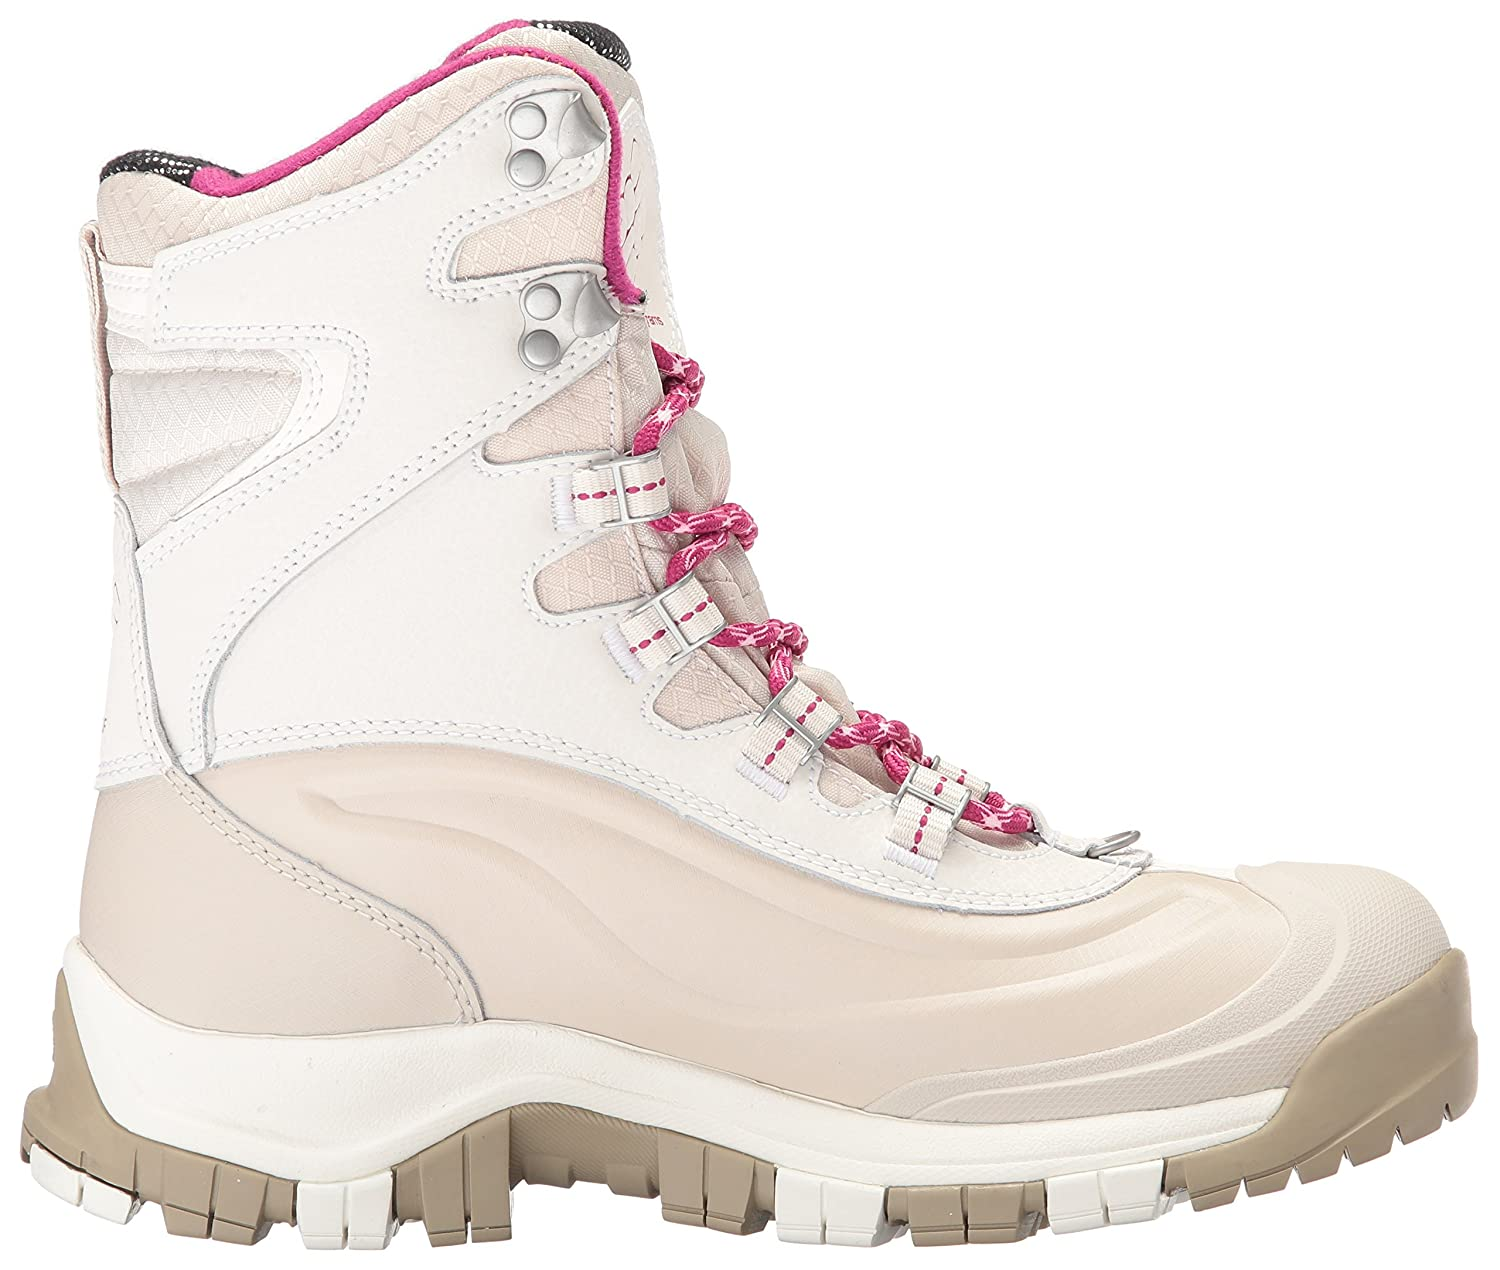 Columbia Women's Bugaboot Plus Omni-Heat Michelin B(M) Snow Boot B01NCNYWM3 7 B(M) Michelin US|Sea Salt, Deep Blush dba7fd